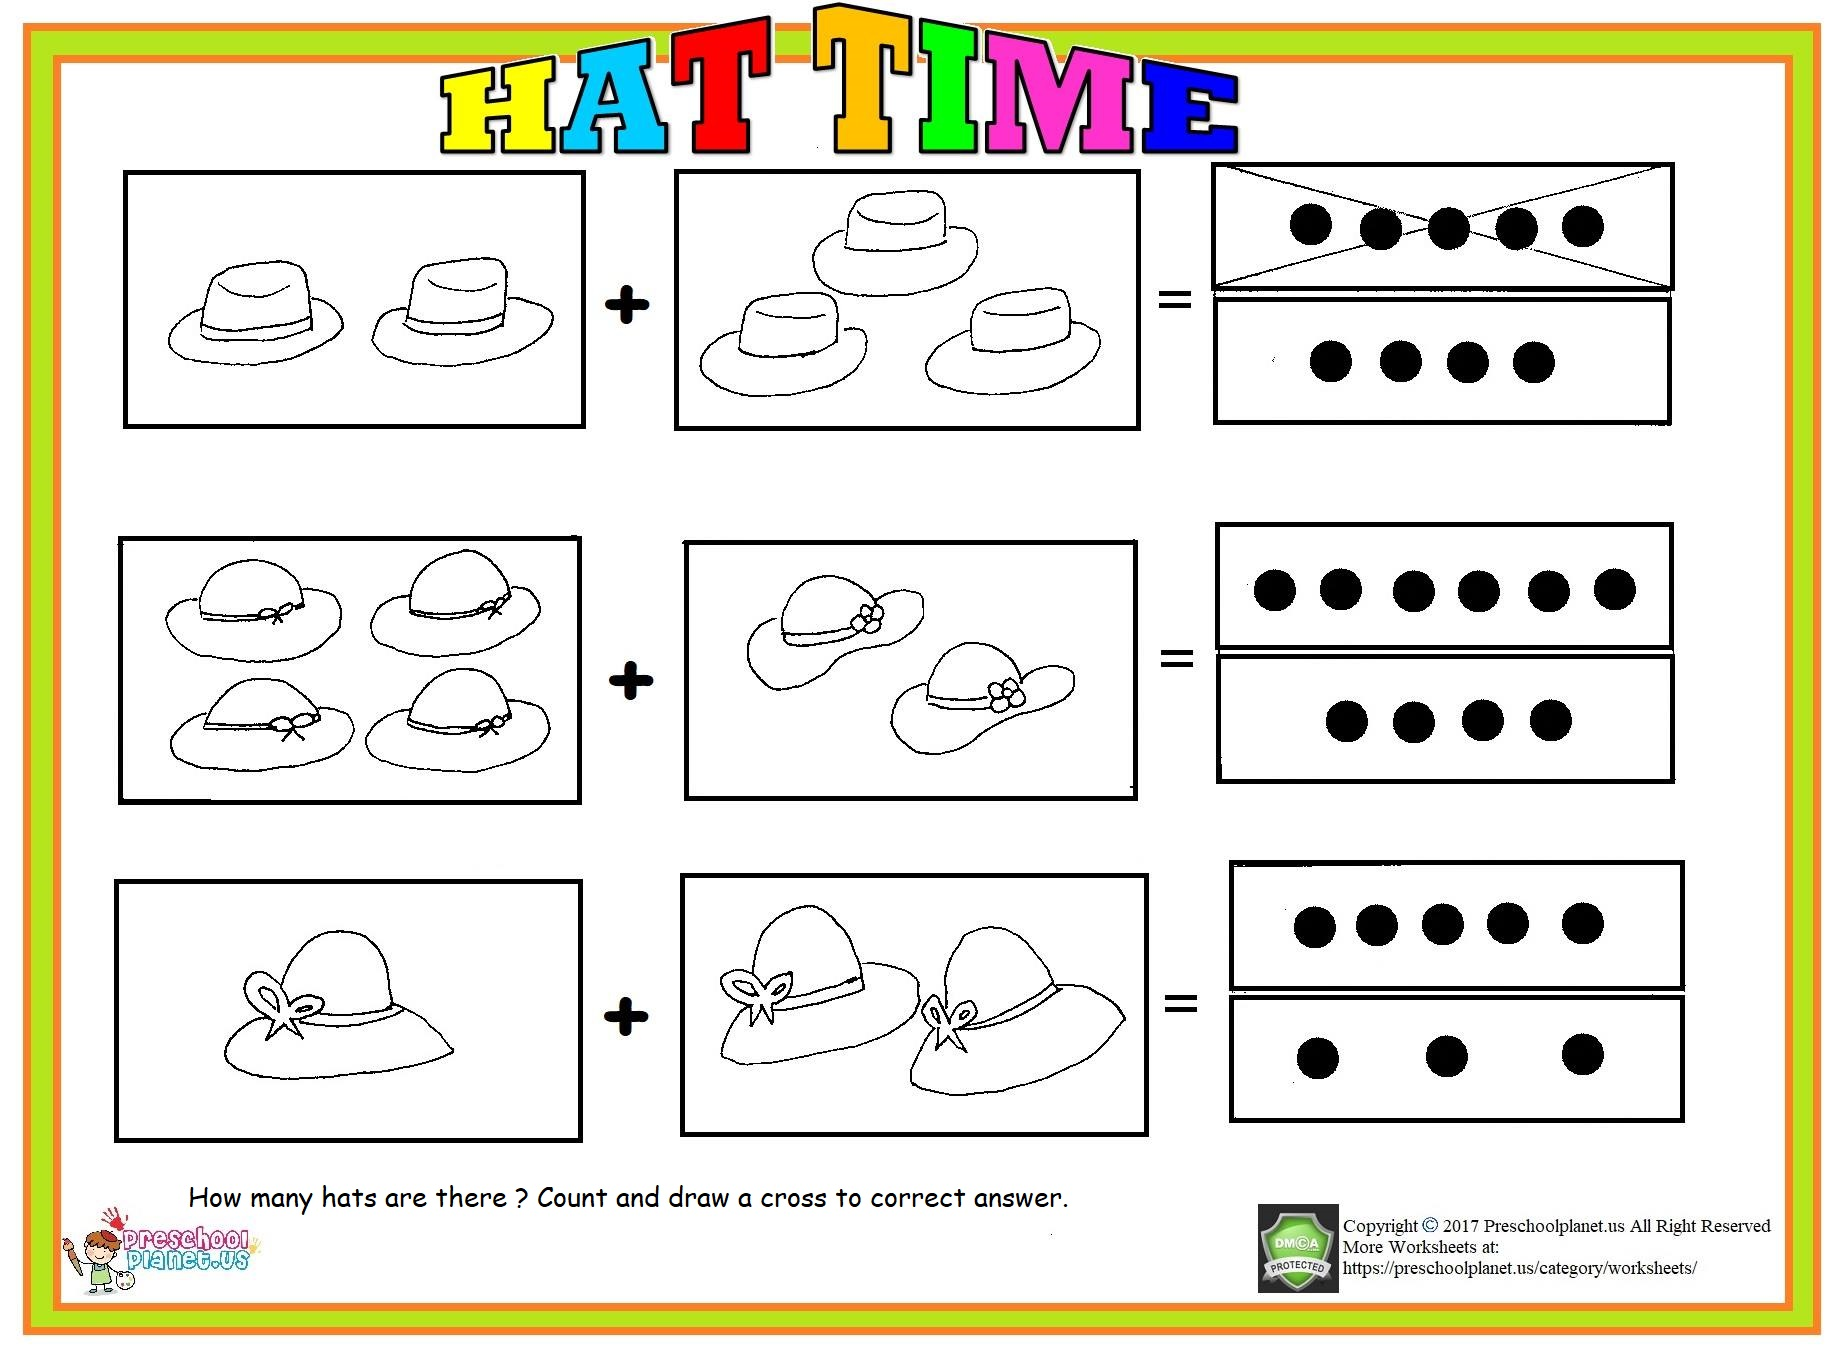 Counting hats worksheet